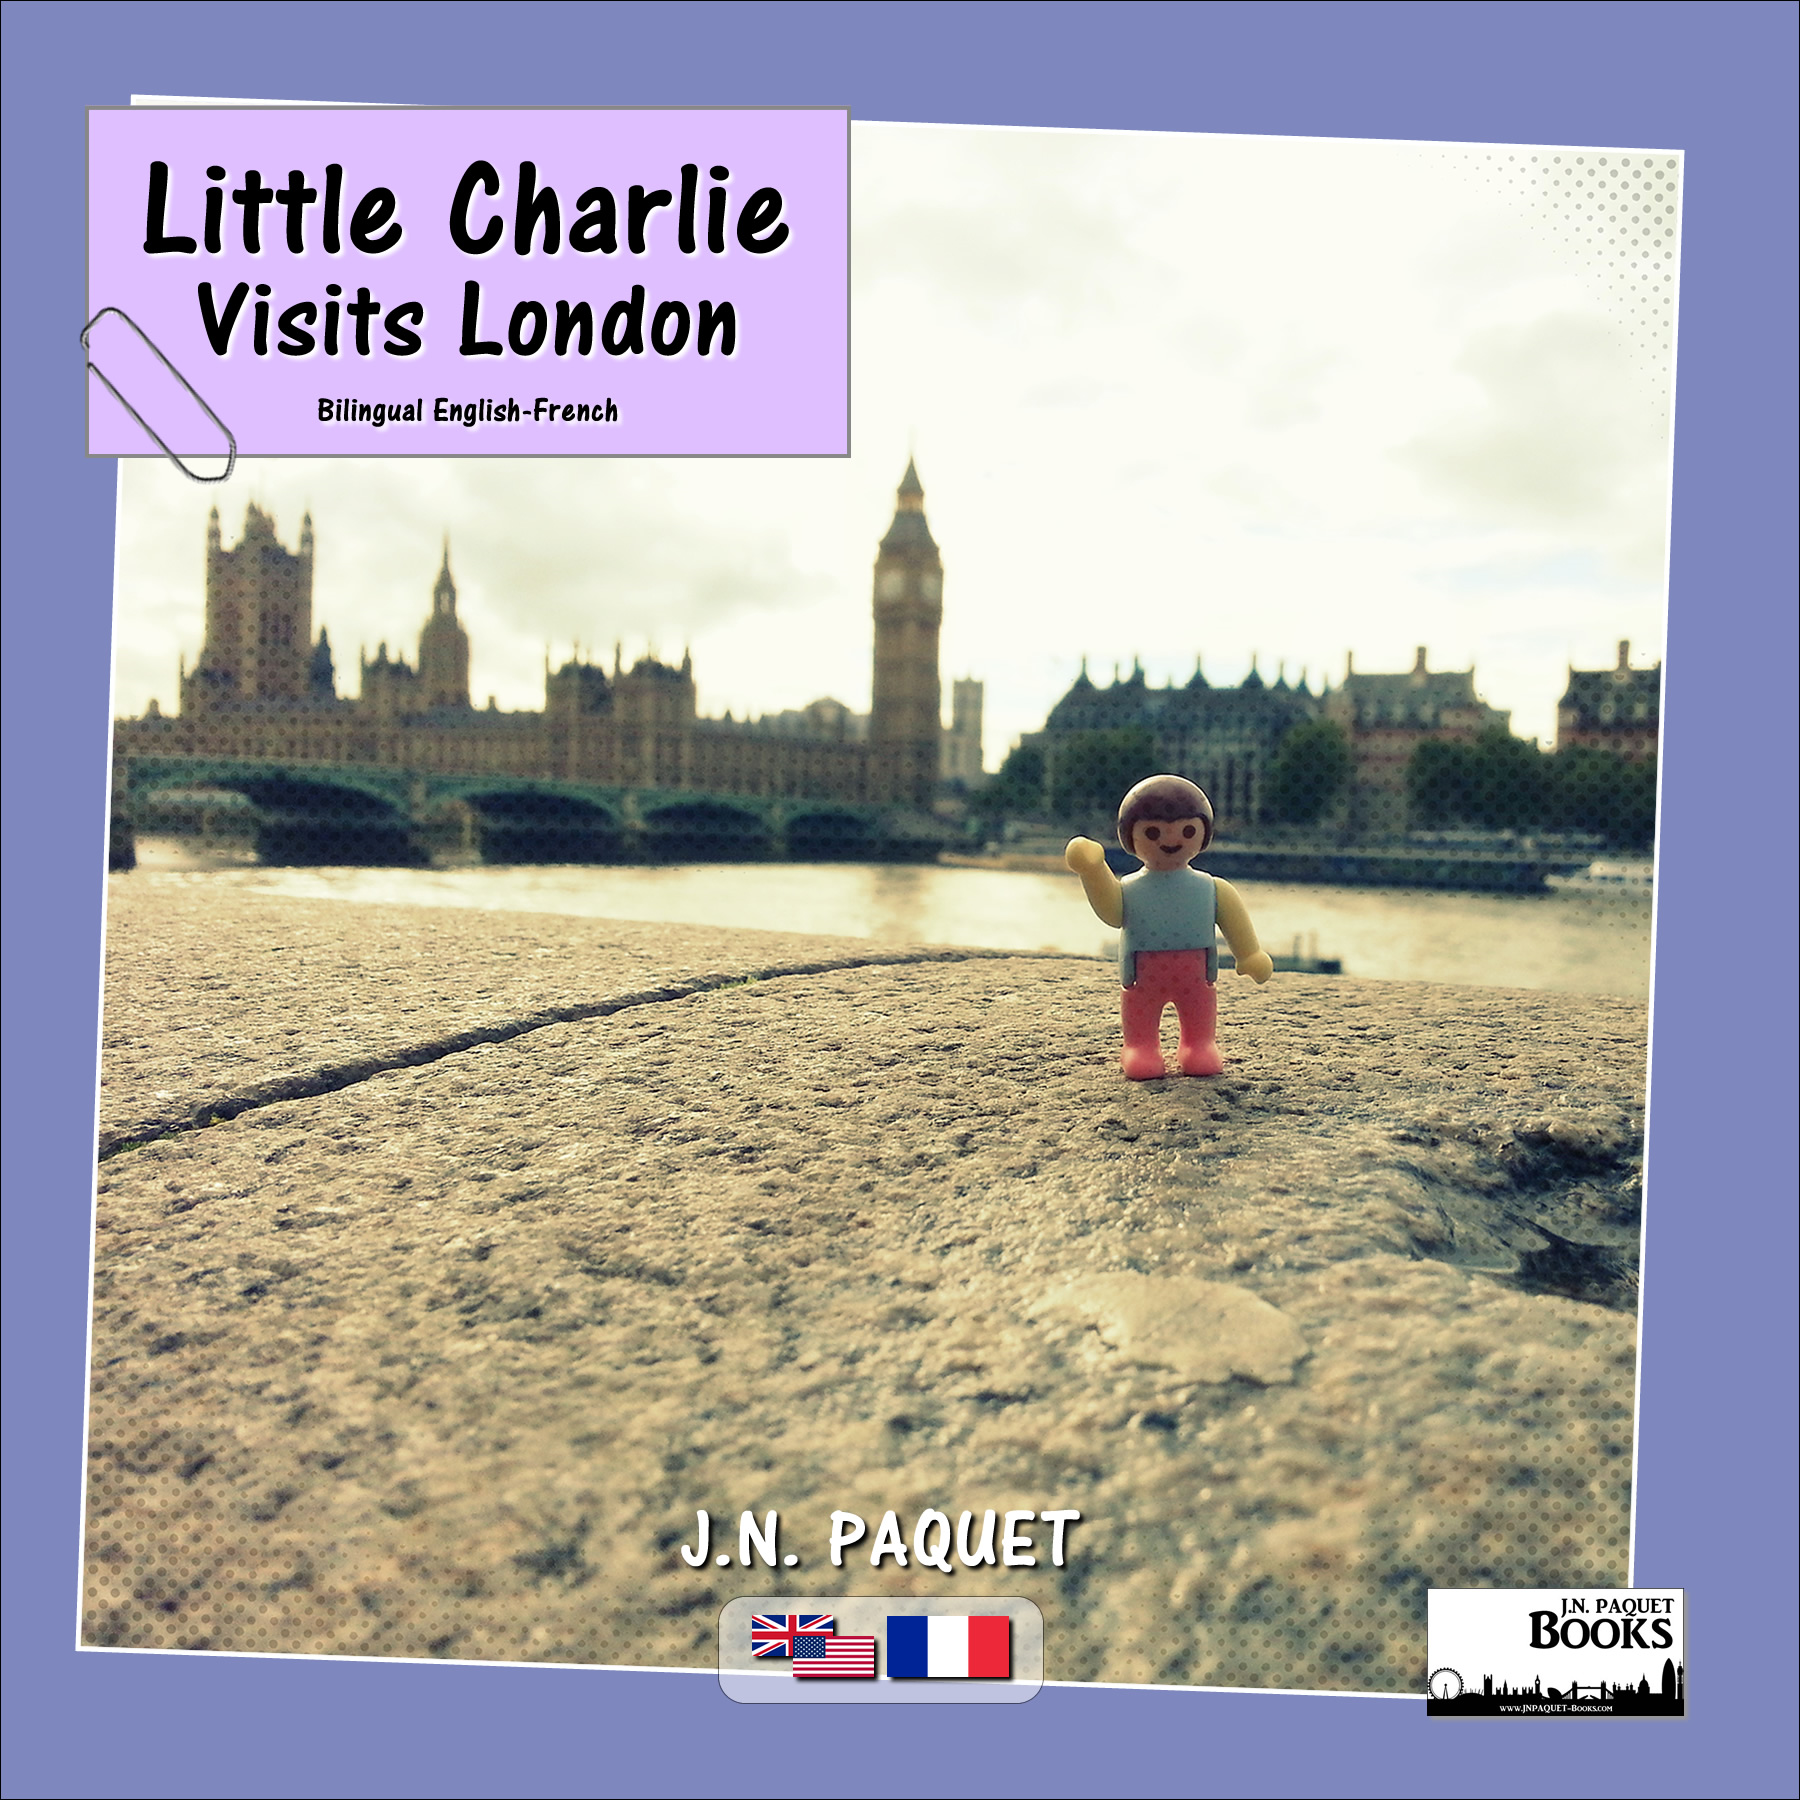 Little Charlie Visits London (Bilingual English-French)